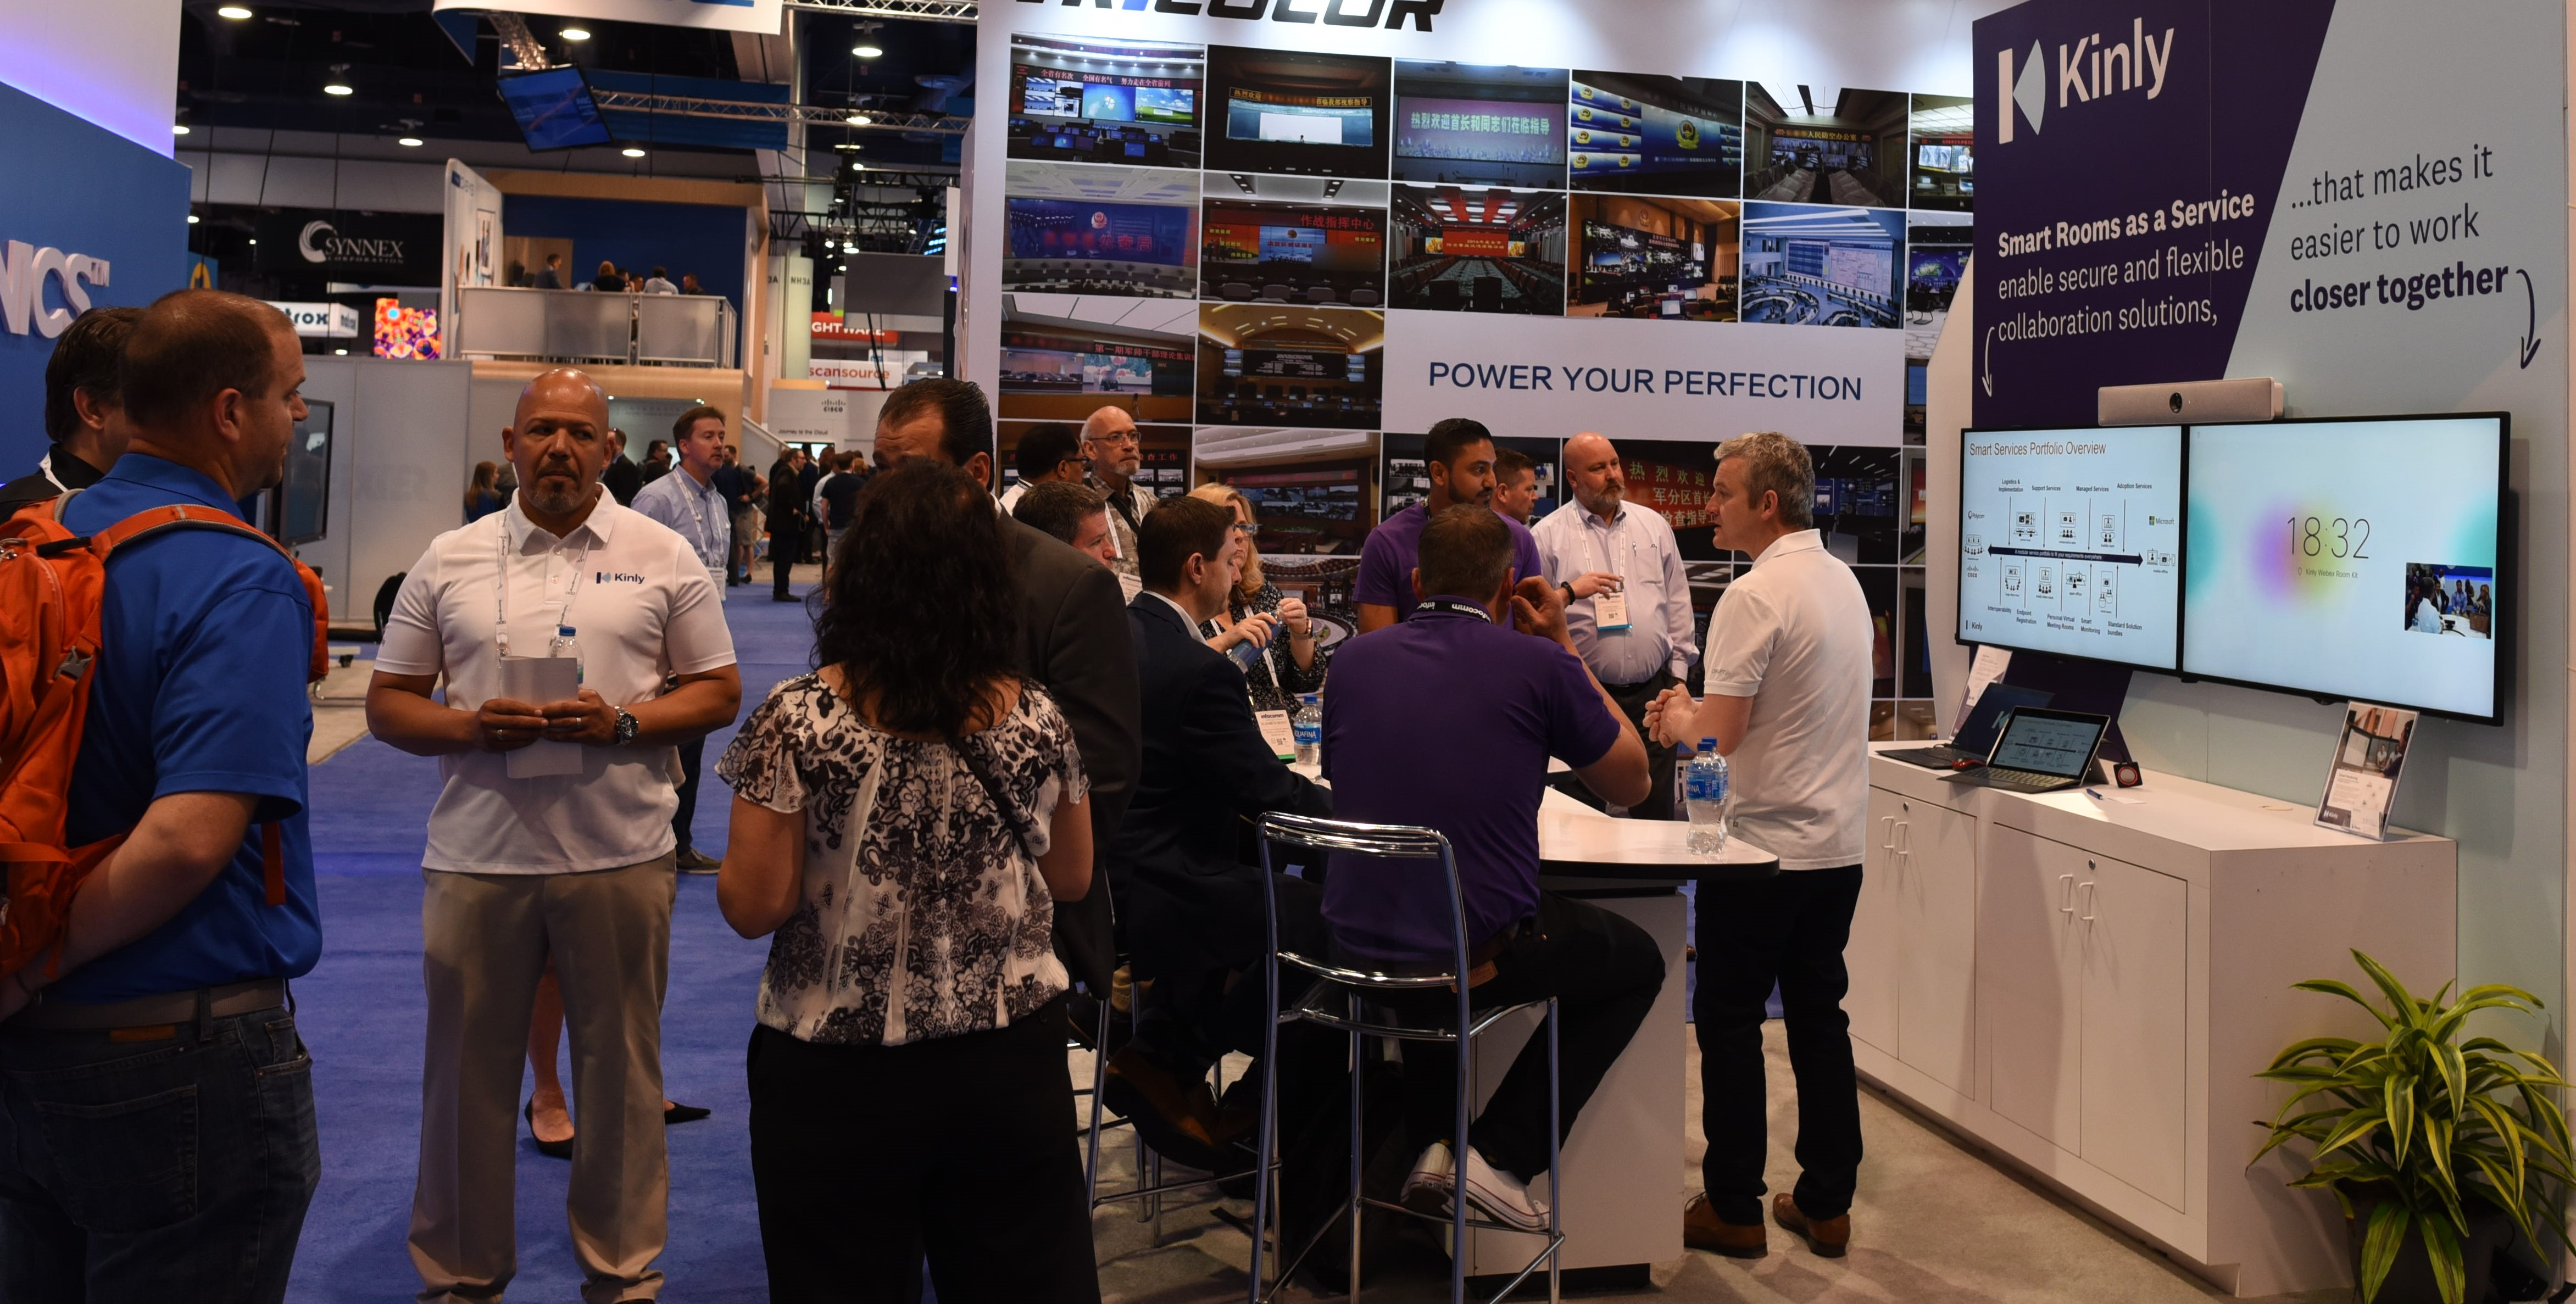 Kinly demos Smart Solutions at InfoComm 18